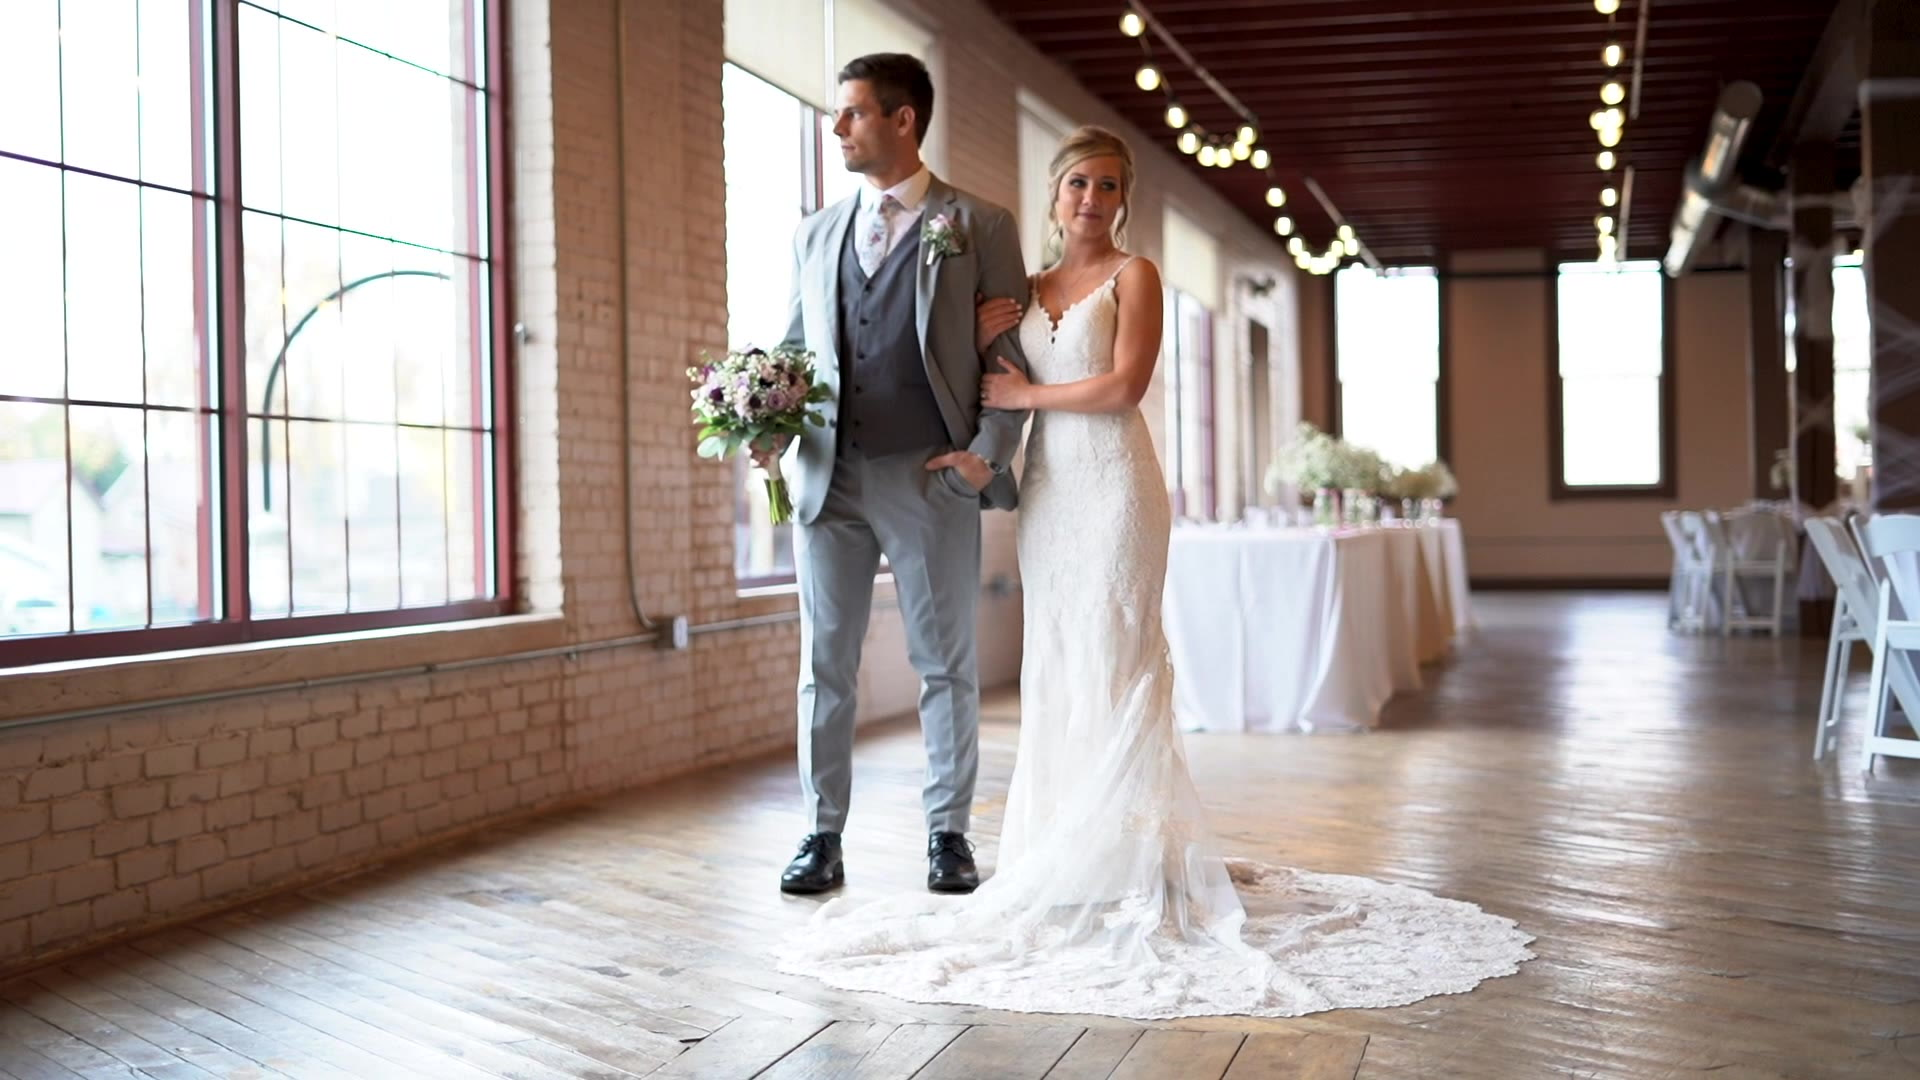 Kaitlyn + Garrison | Nappanee, Indiana | Coppes Common Event Center